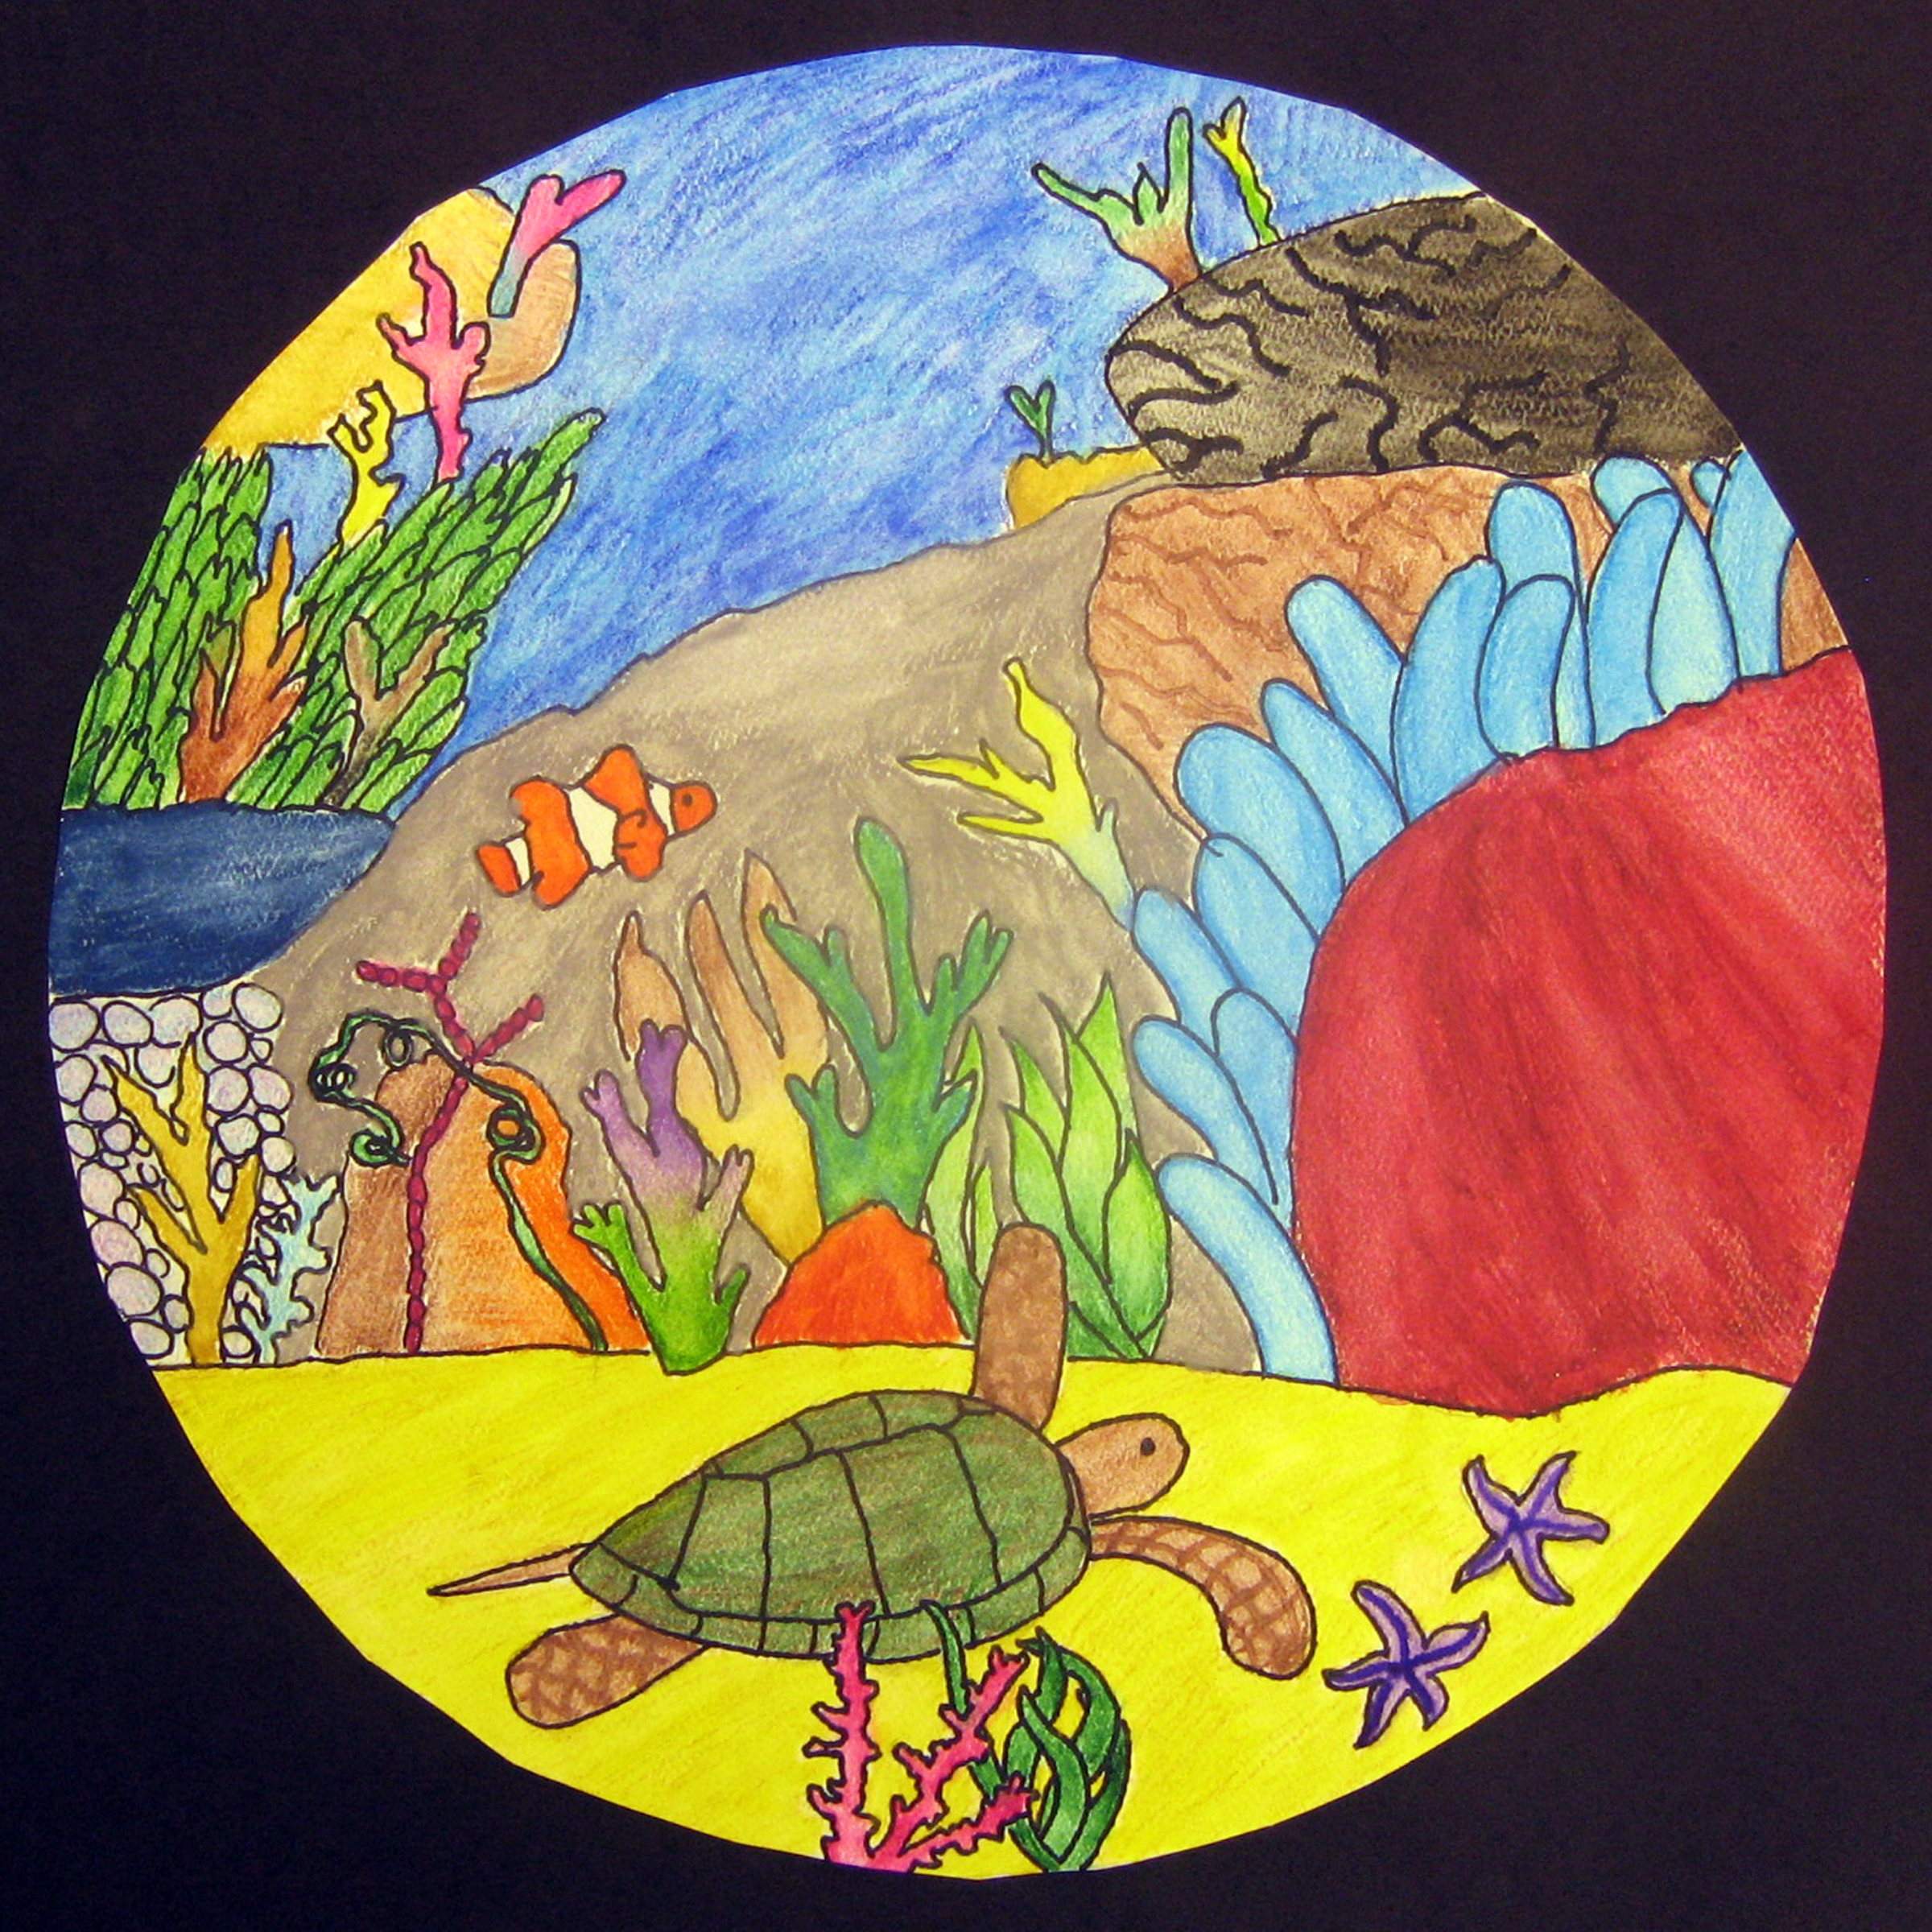 Biome Illustrations Ms Amslers Artroom